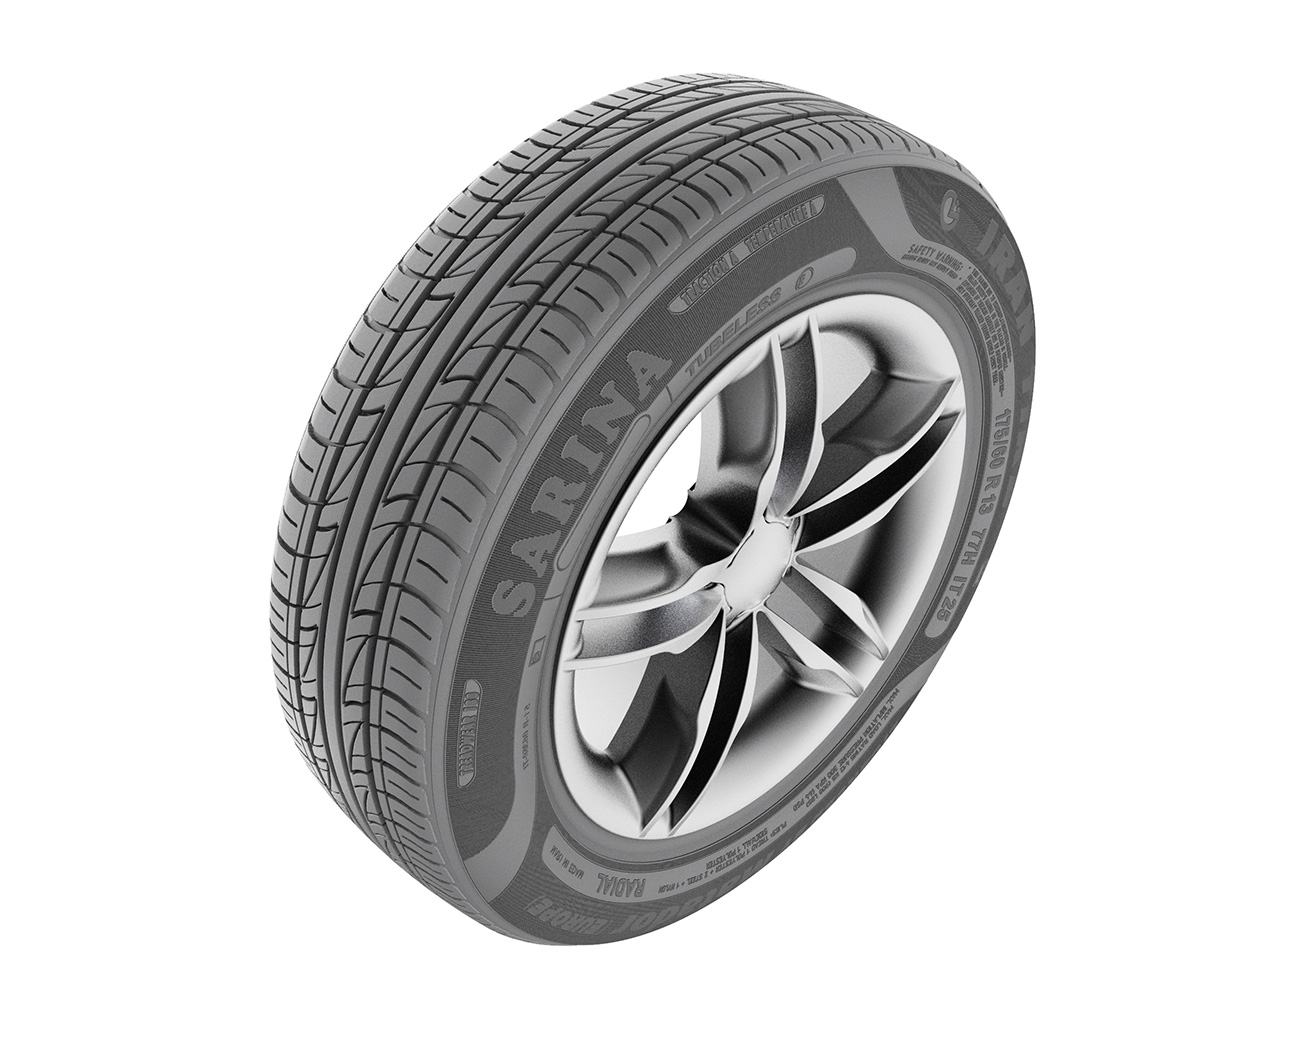 Tire2 - رندر صنعتی سه بعدی